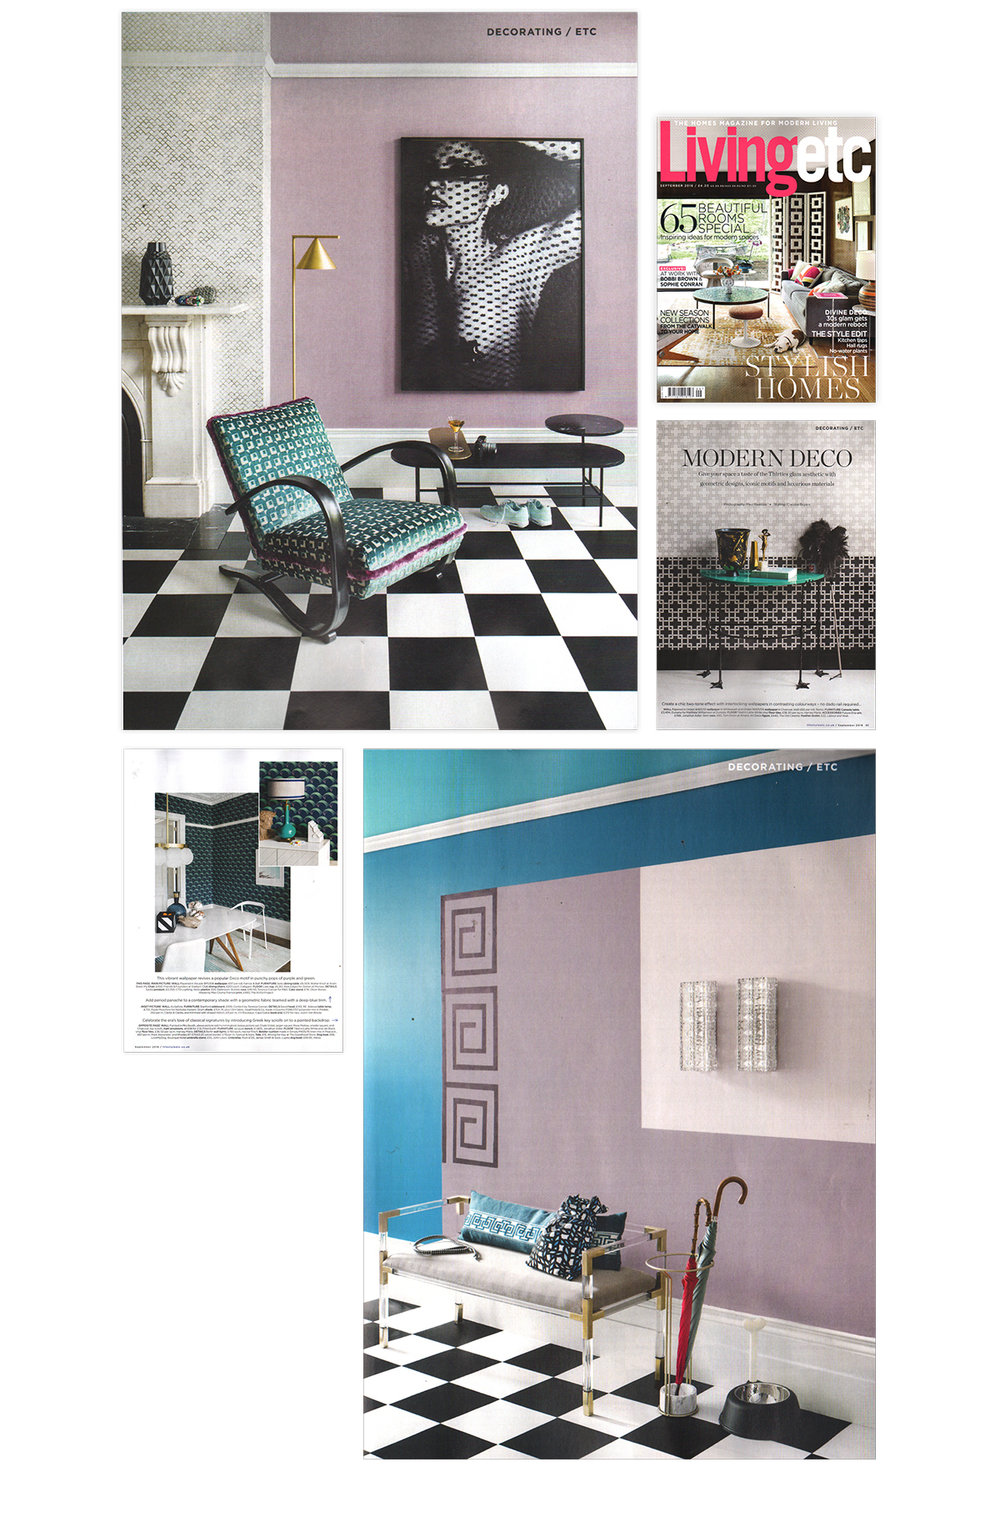 Interiors_PR_Product_Loan_Example_3.jpg